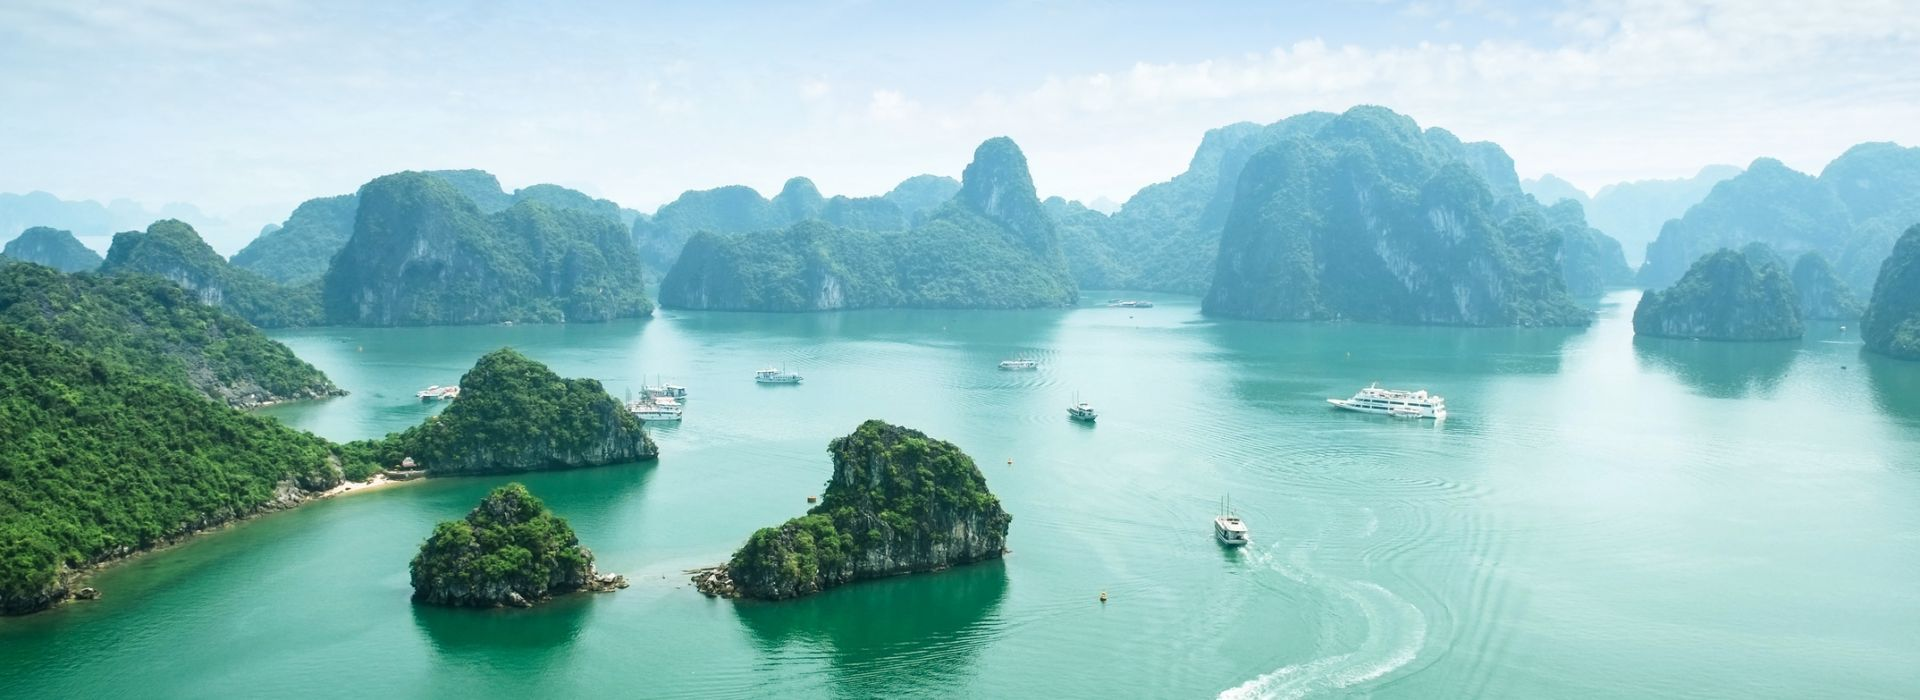 Sightseeing, attractions, culture and history Tours in Da Nang